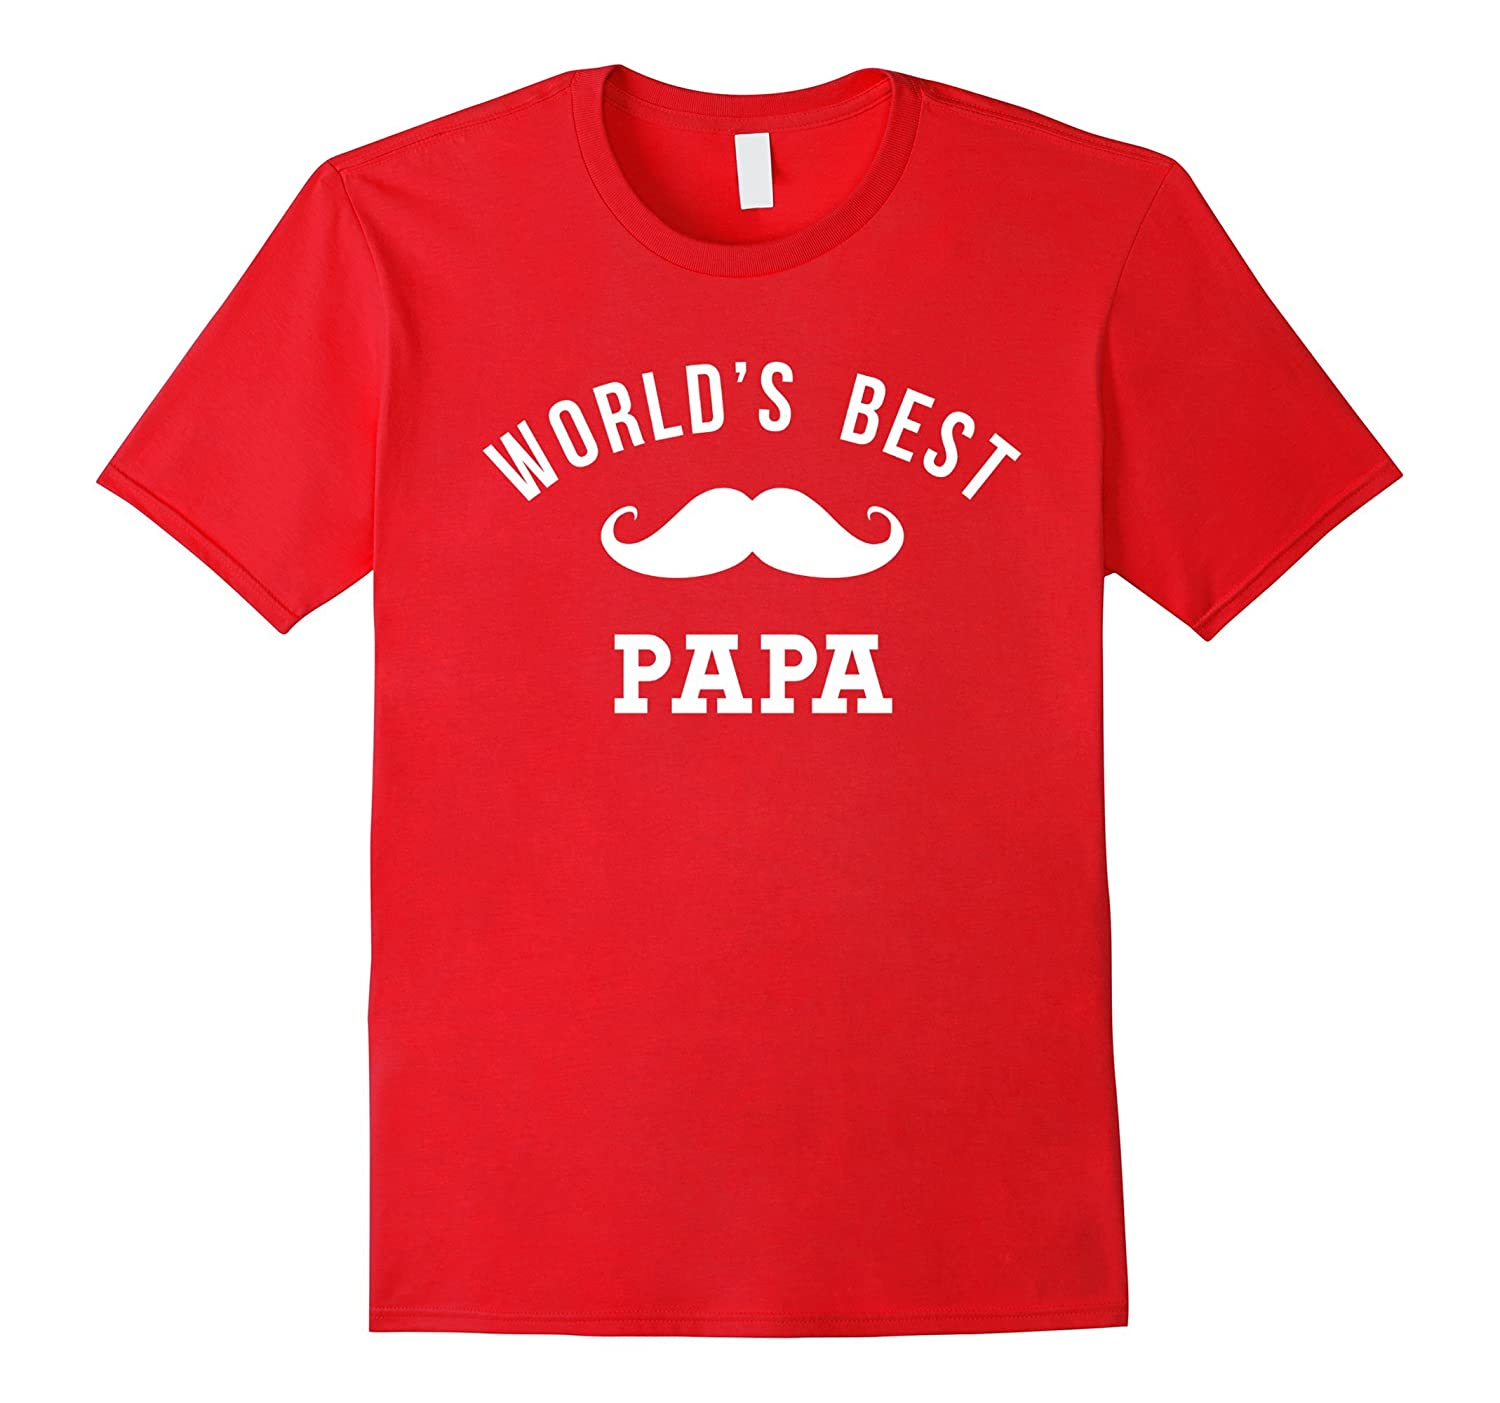 World's Best Papa Shirt Funny Cute Fathers Day Gift Outfit